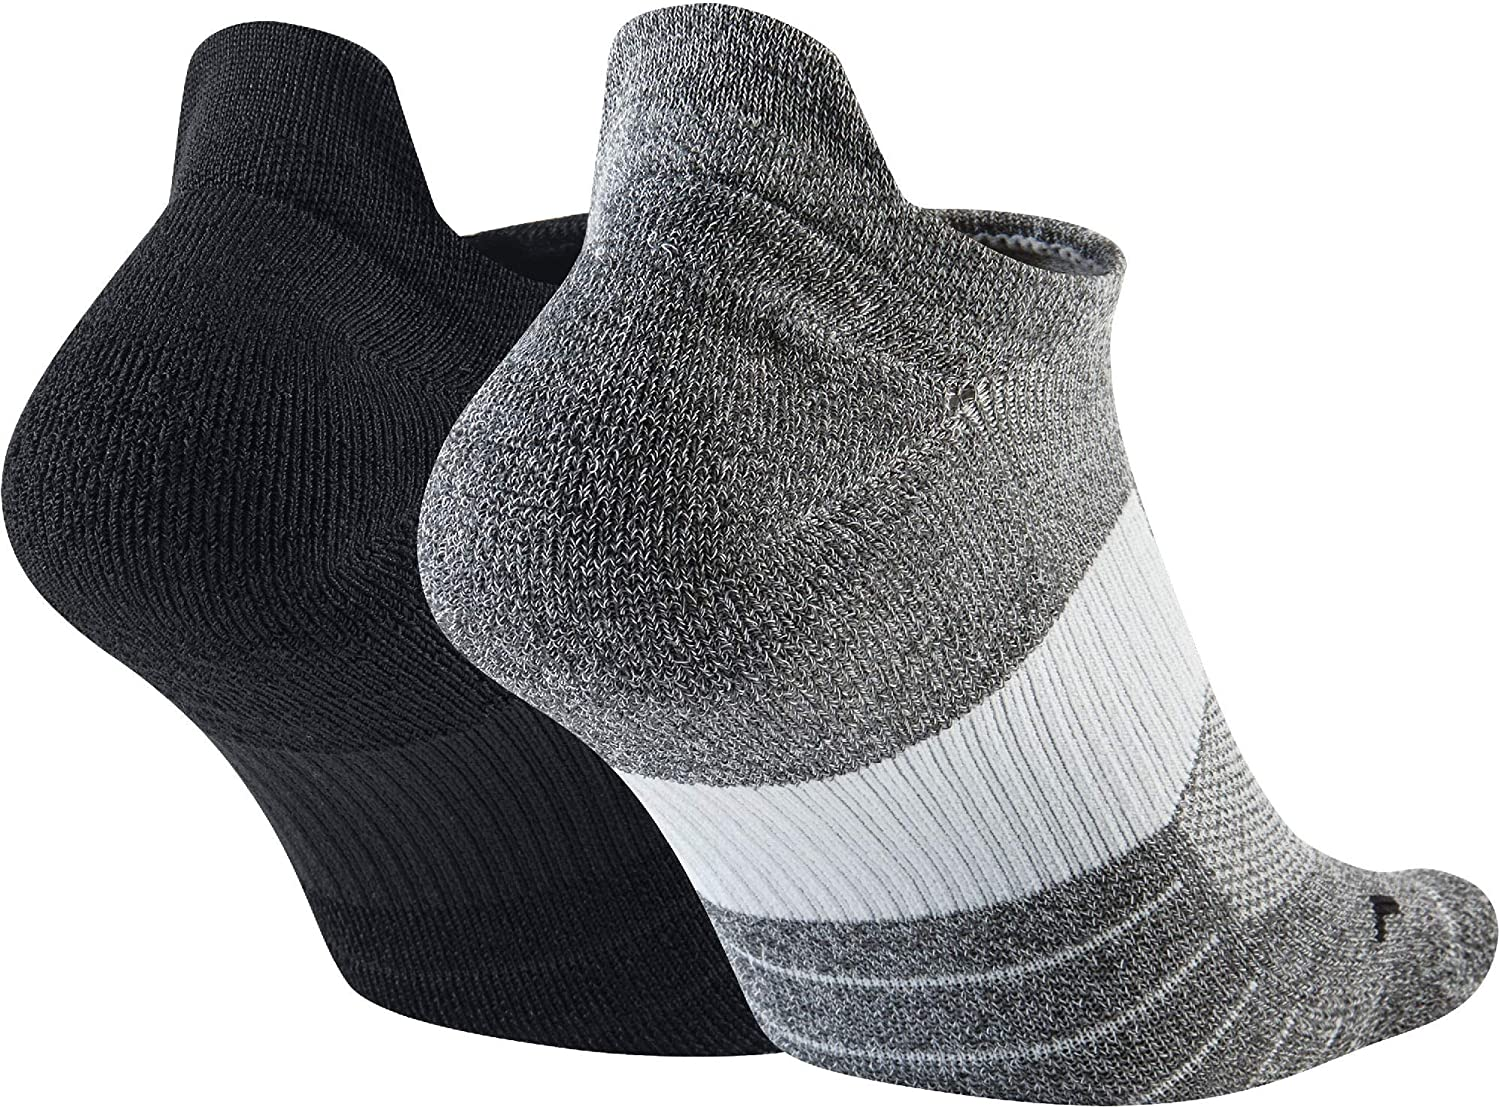 Nike unisex-adult Unisex Nike Multiplier Running No-show Socks (2 Pairs)